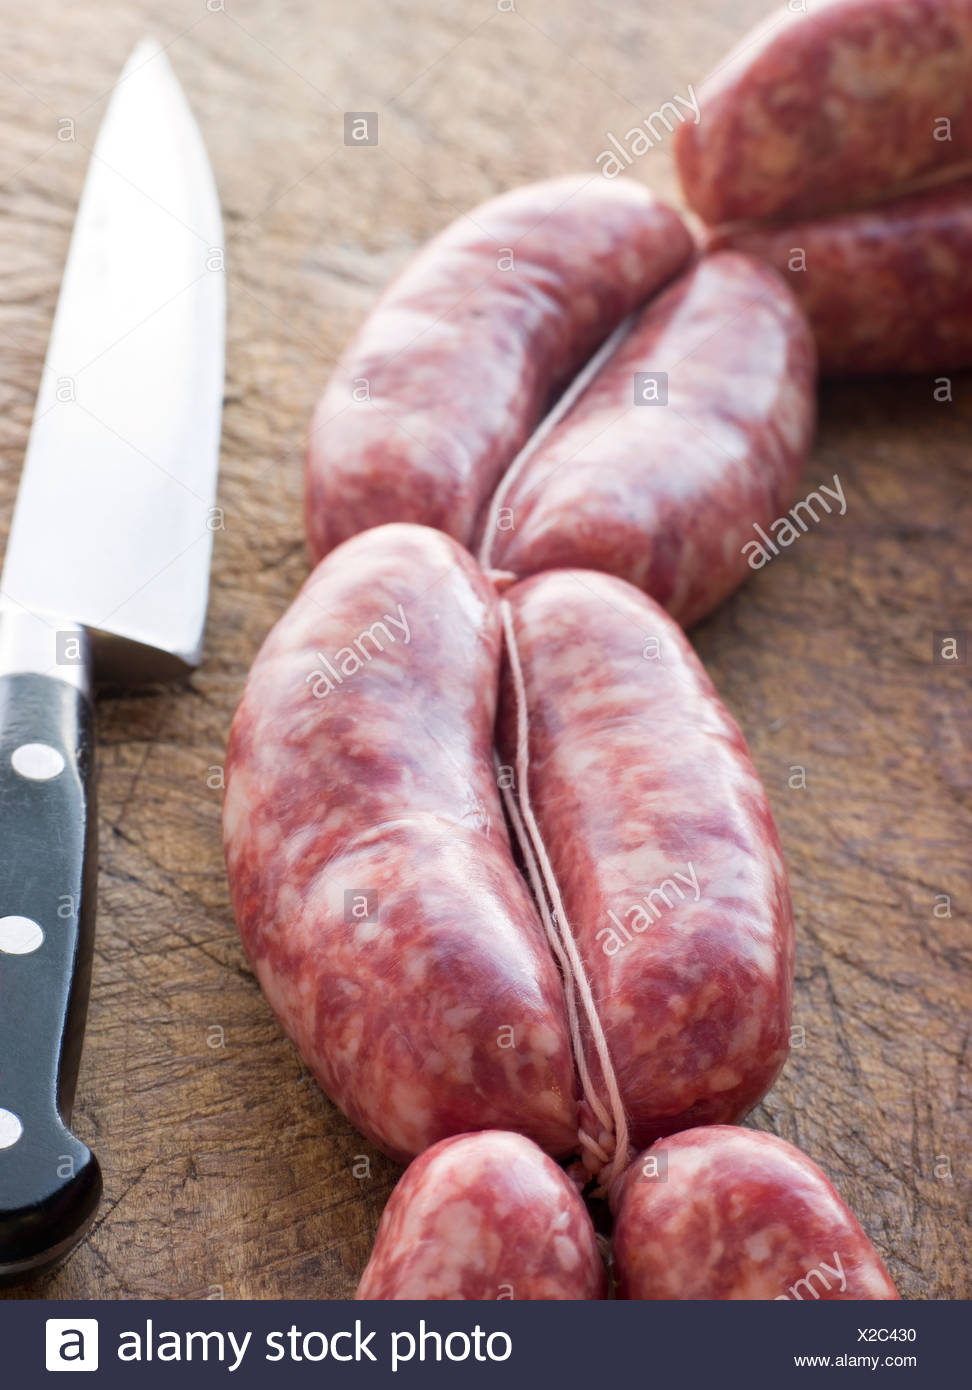 Tuscan sausage in Links - Stock Image